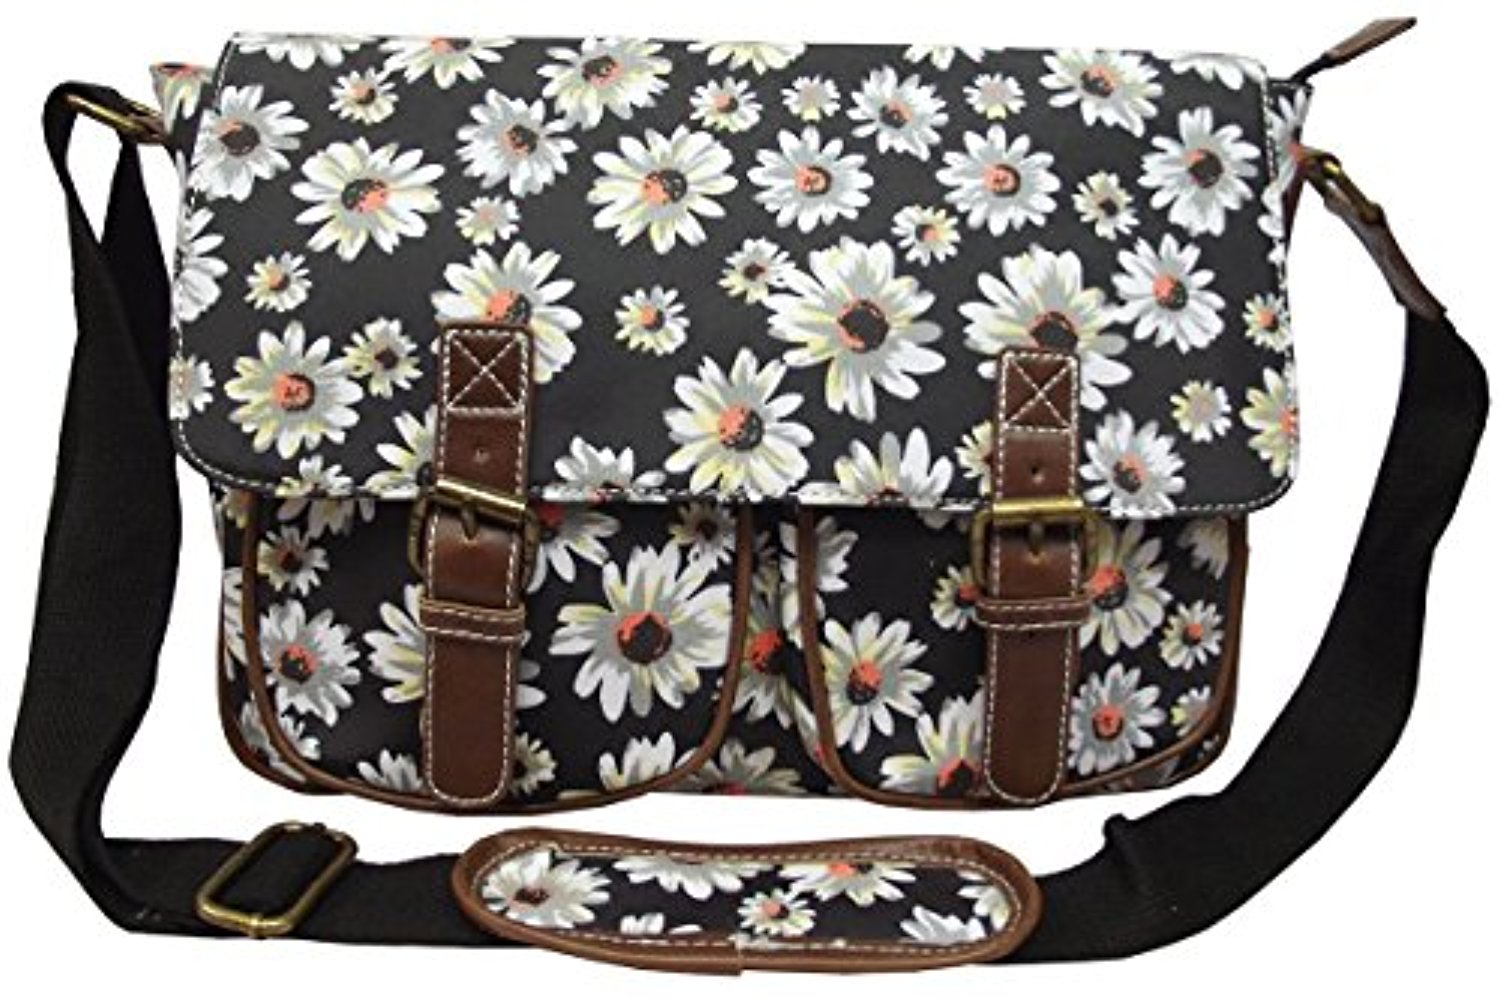 City Girl/Anna Smith Pois, Fleurs (Fleurs) Cartable ...